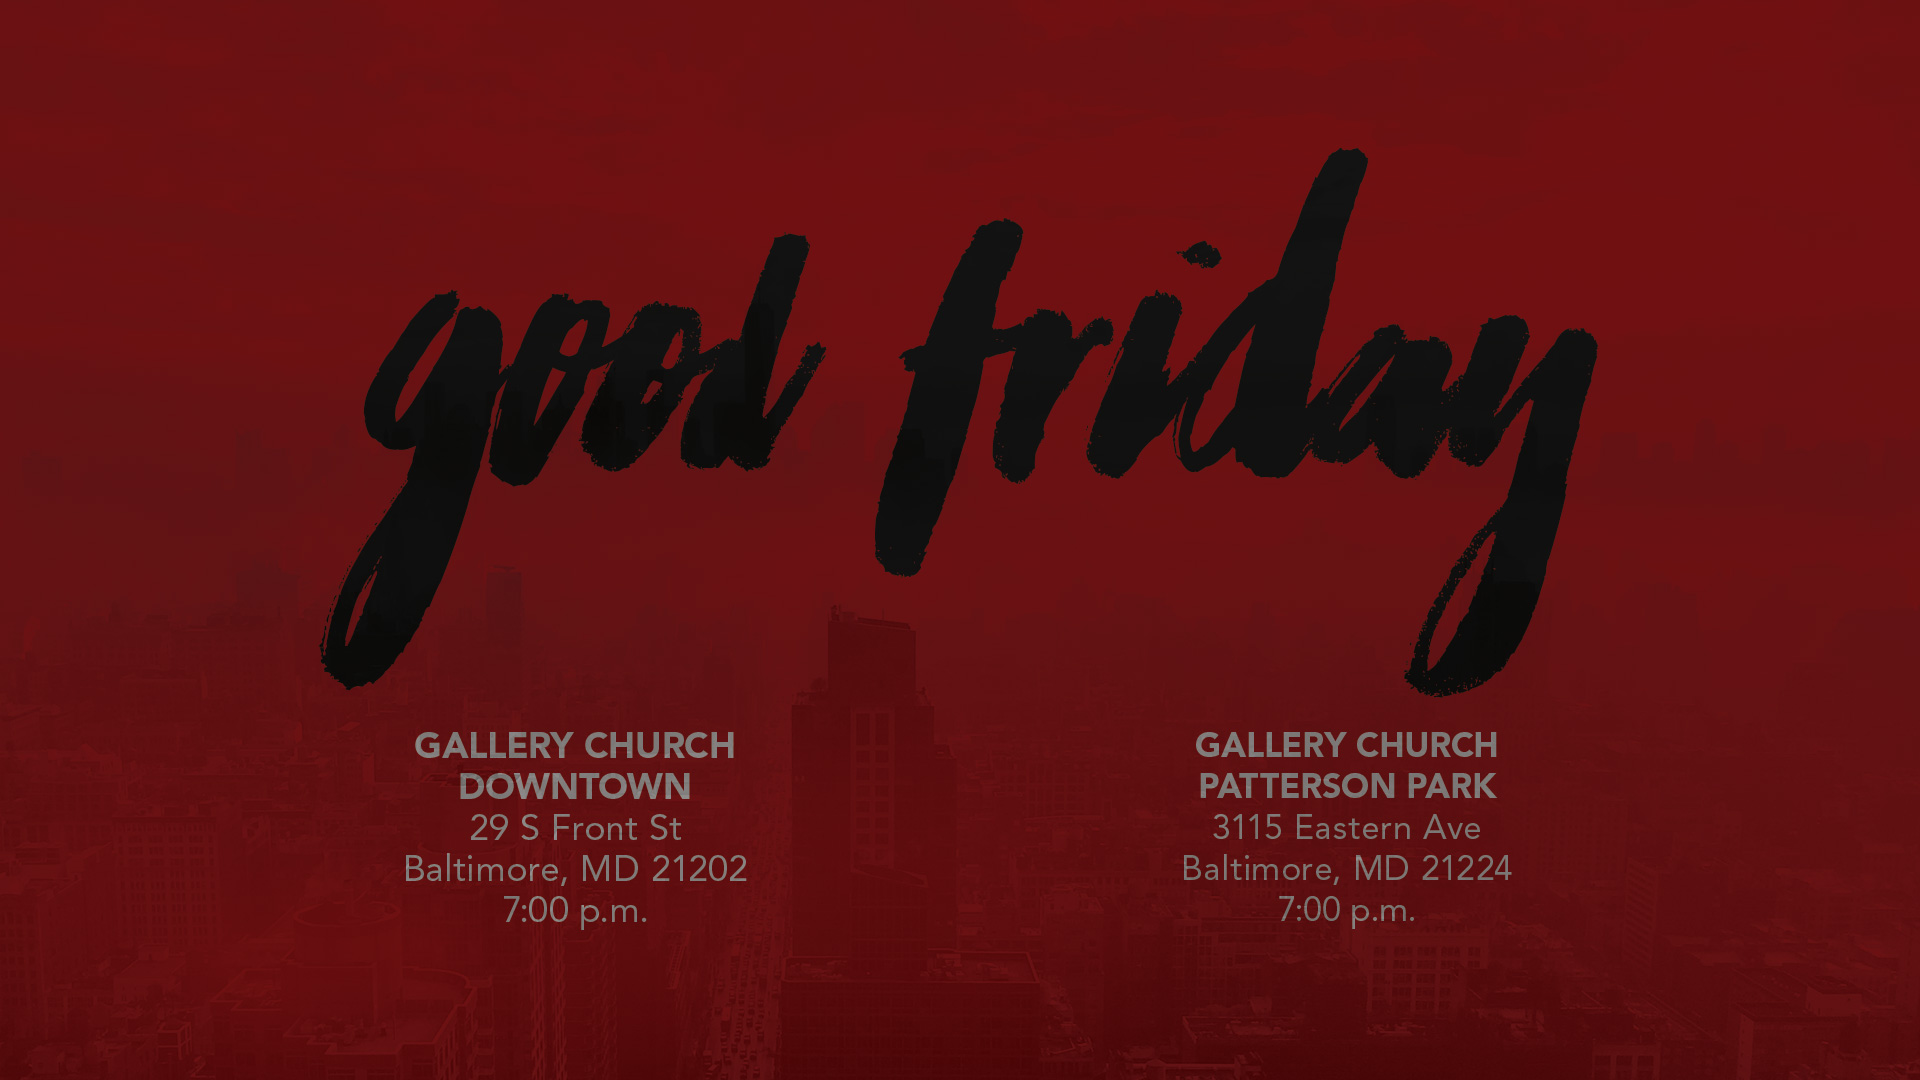 GoodFriday2016_fb